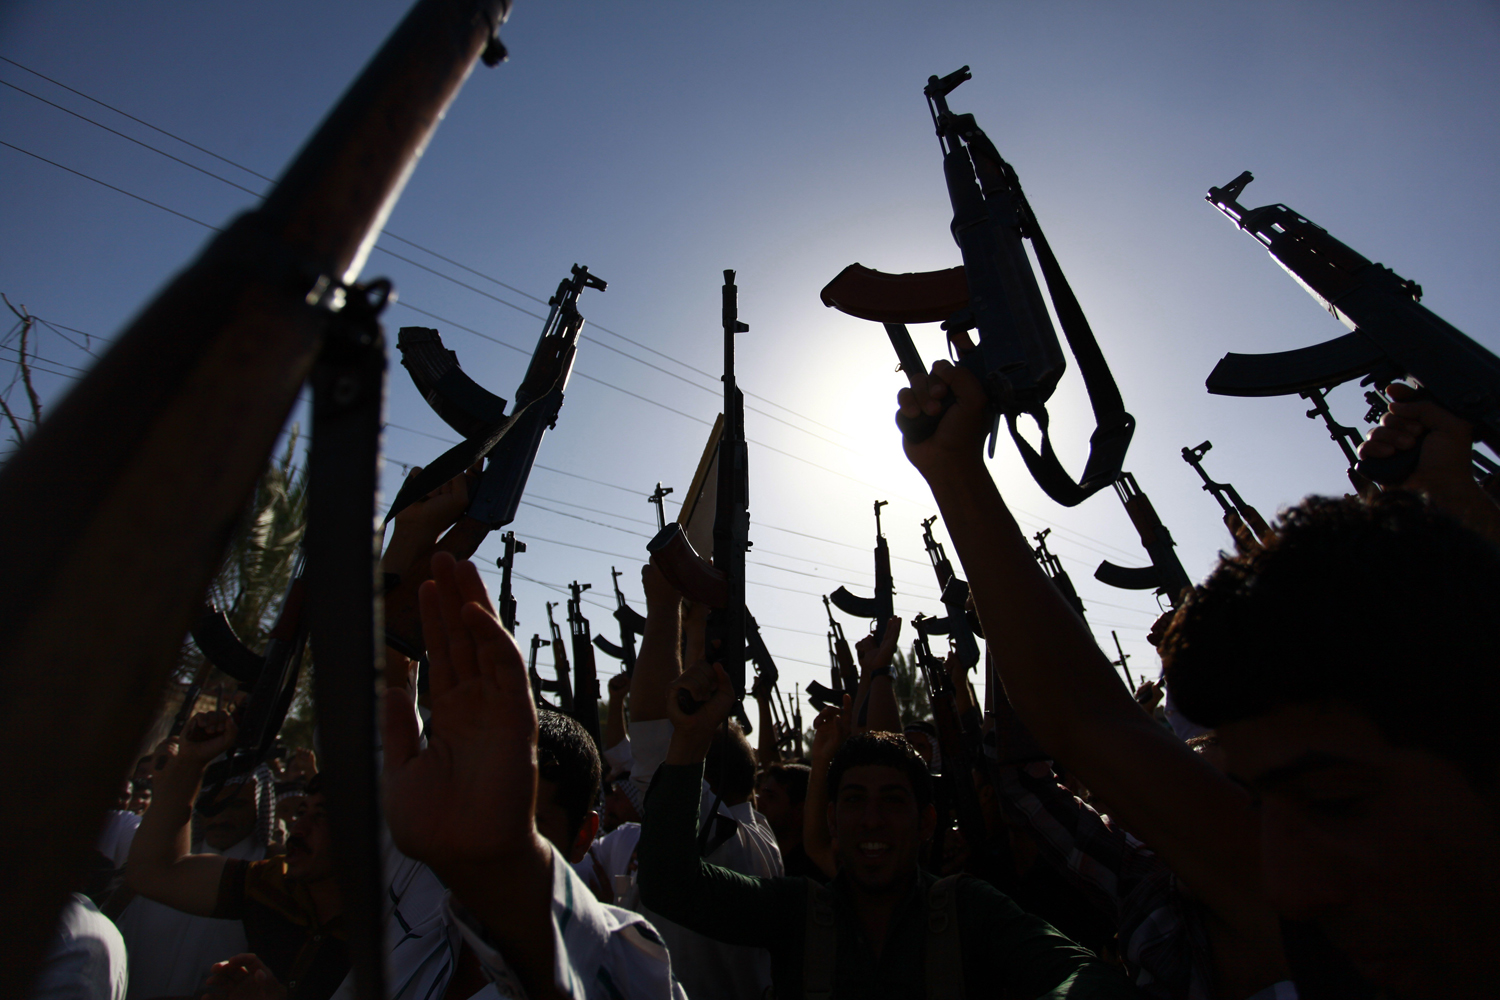 Jun. 17 2014. Iraqi Shi'ite tribesmen brandish their weapons as they gather to show their willingness to join Iraqi security forces in the fight against Jihadist militants.